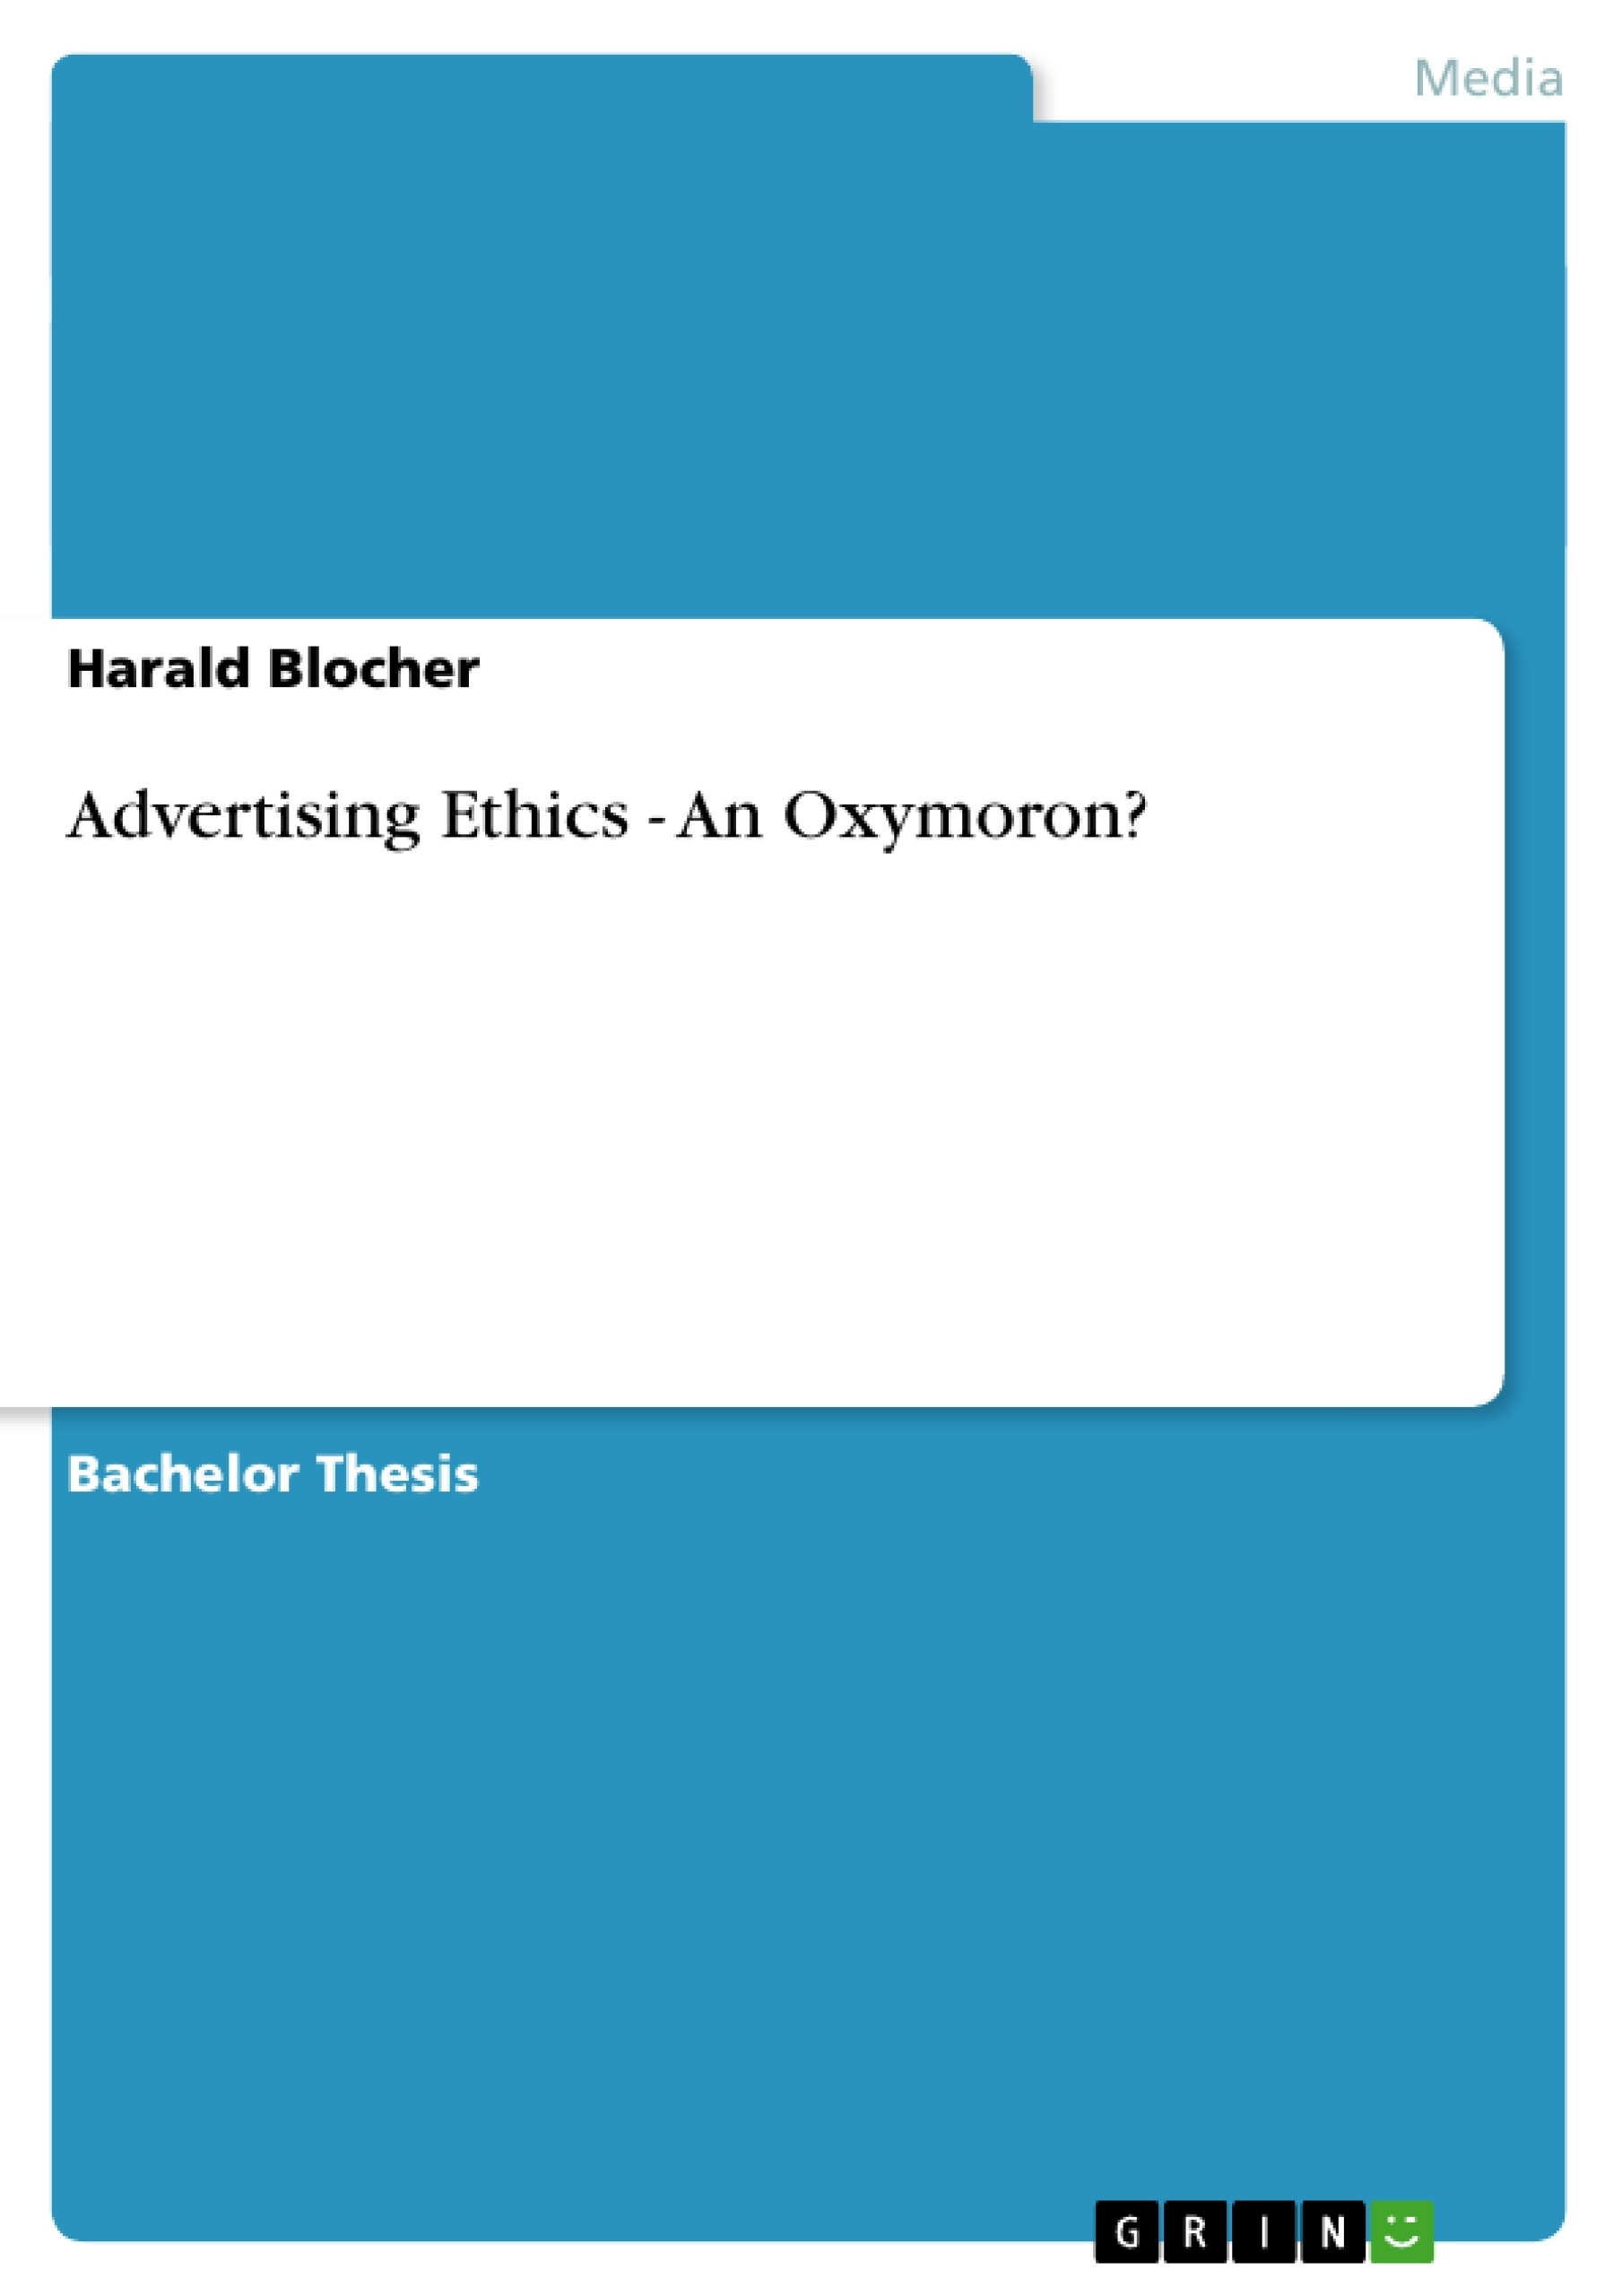 Title: Advertising Ethics - An Oxymoron?